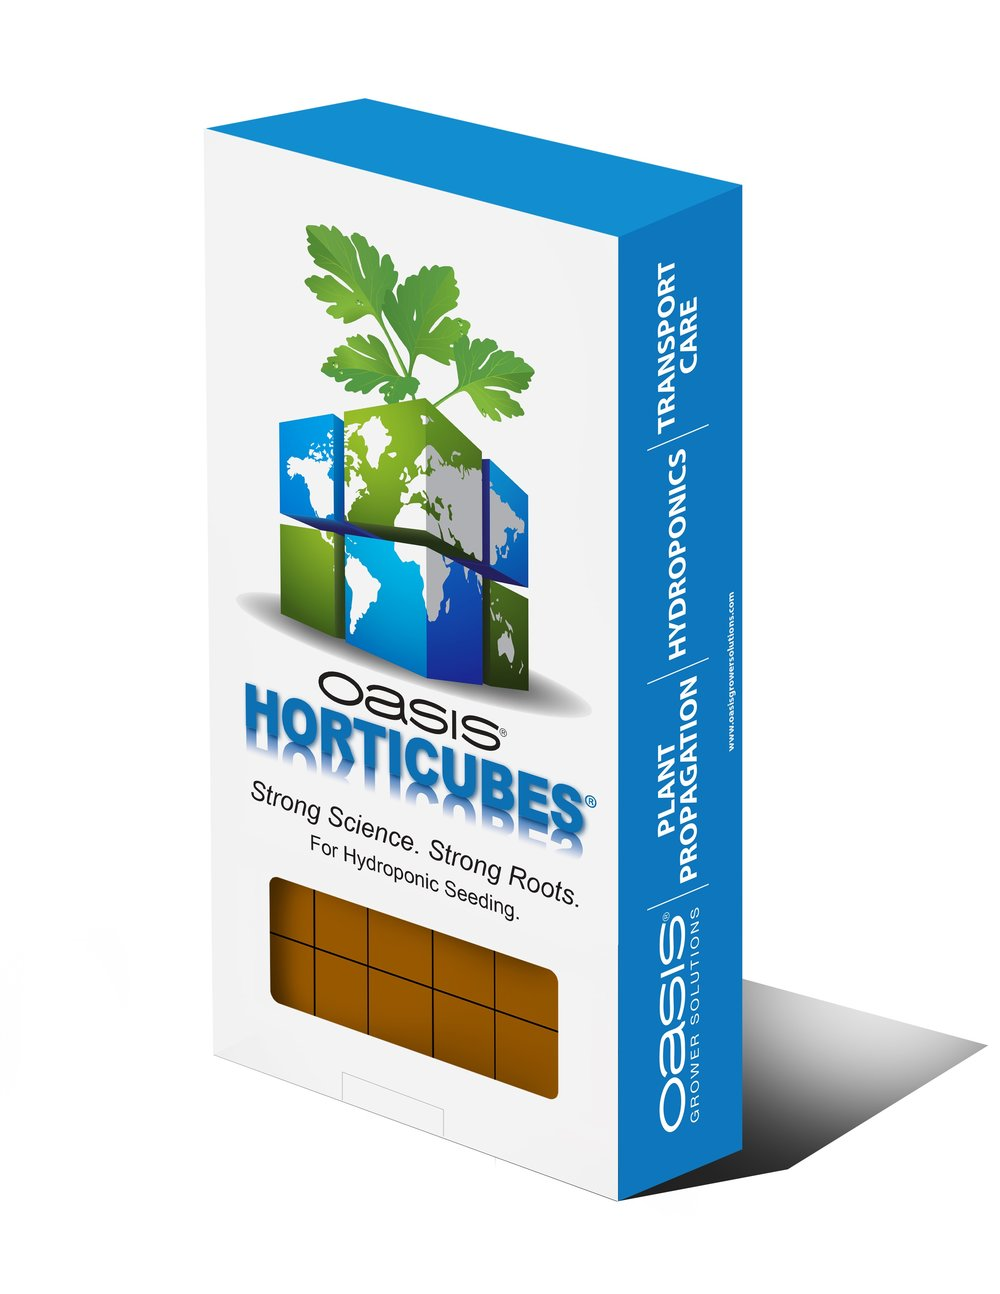 Oasis® Horticubes retail packs ideal for smaller and hobby growers, as well as larger growers to use for trials..